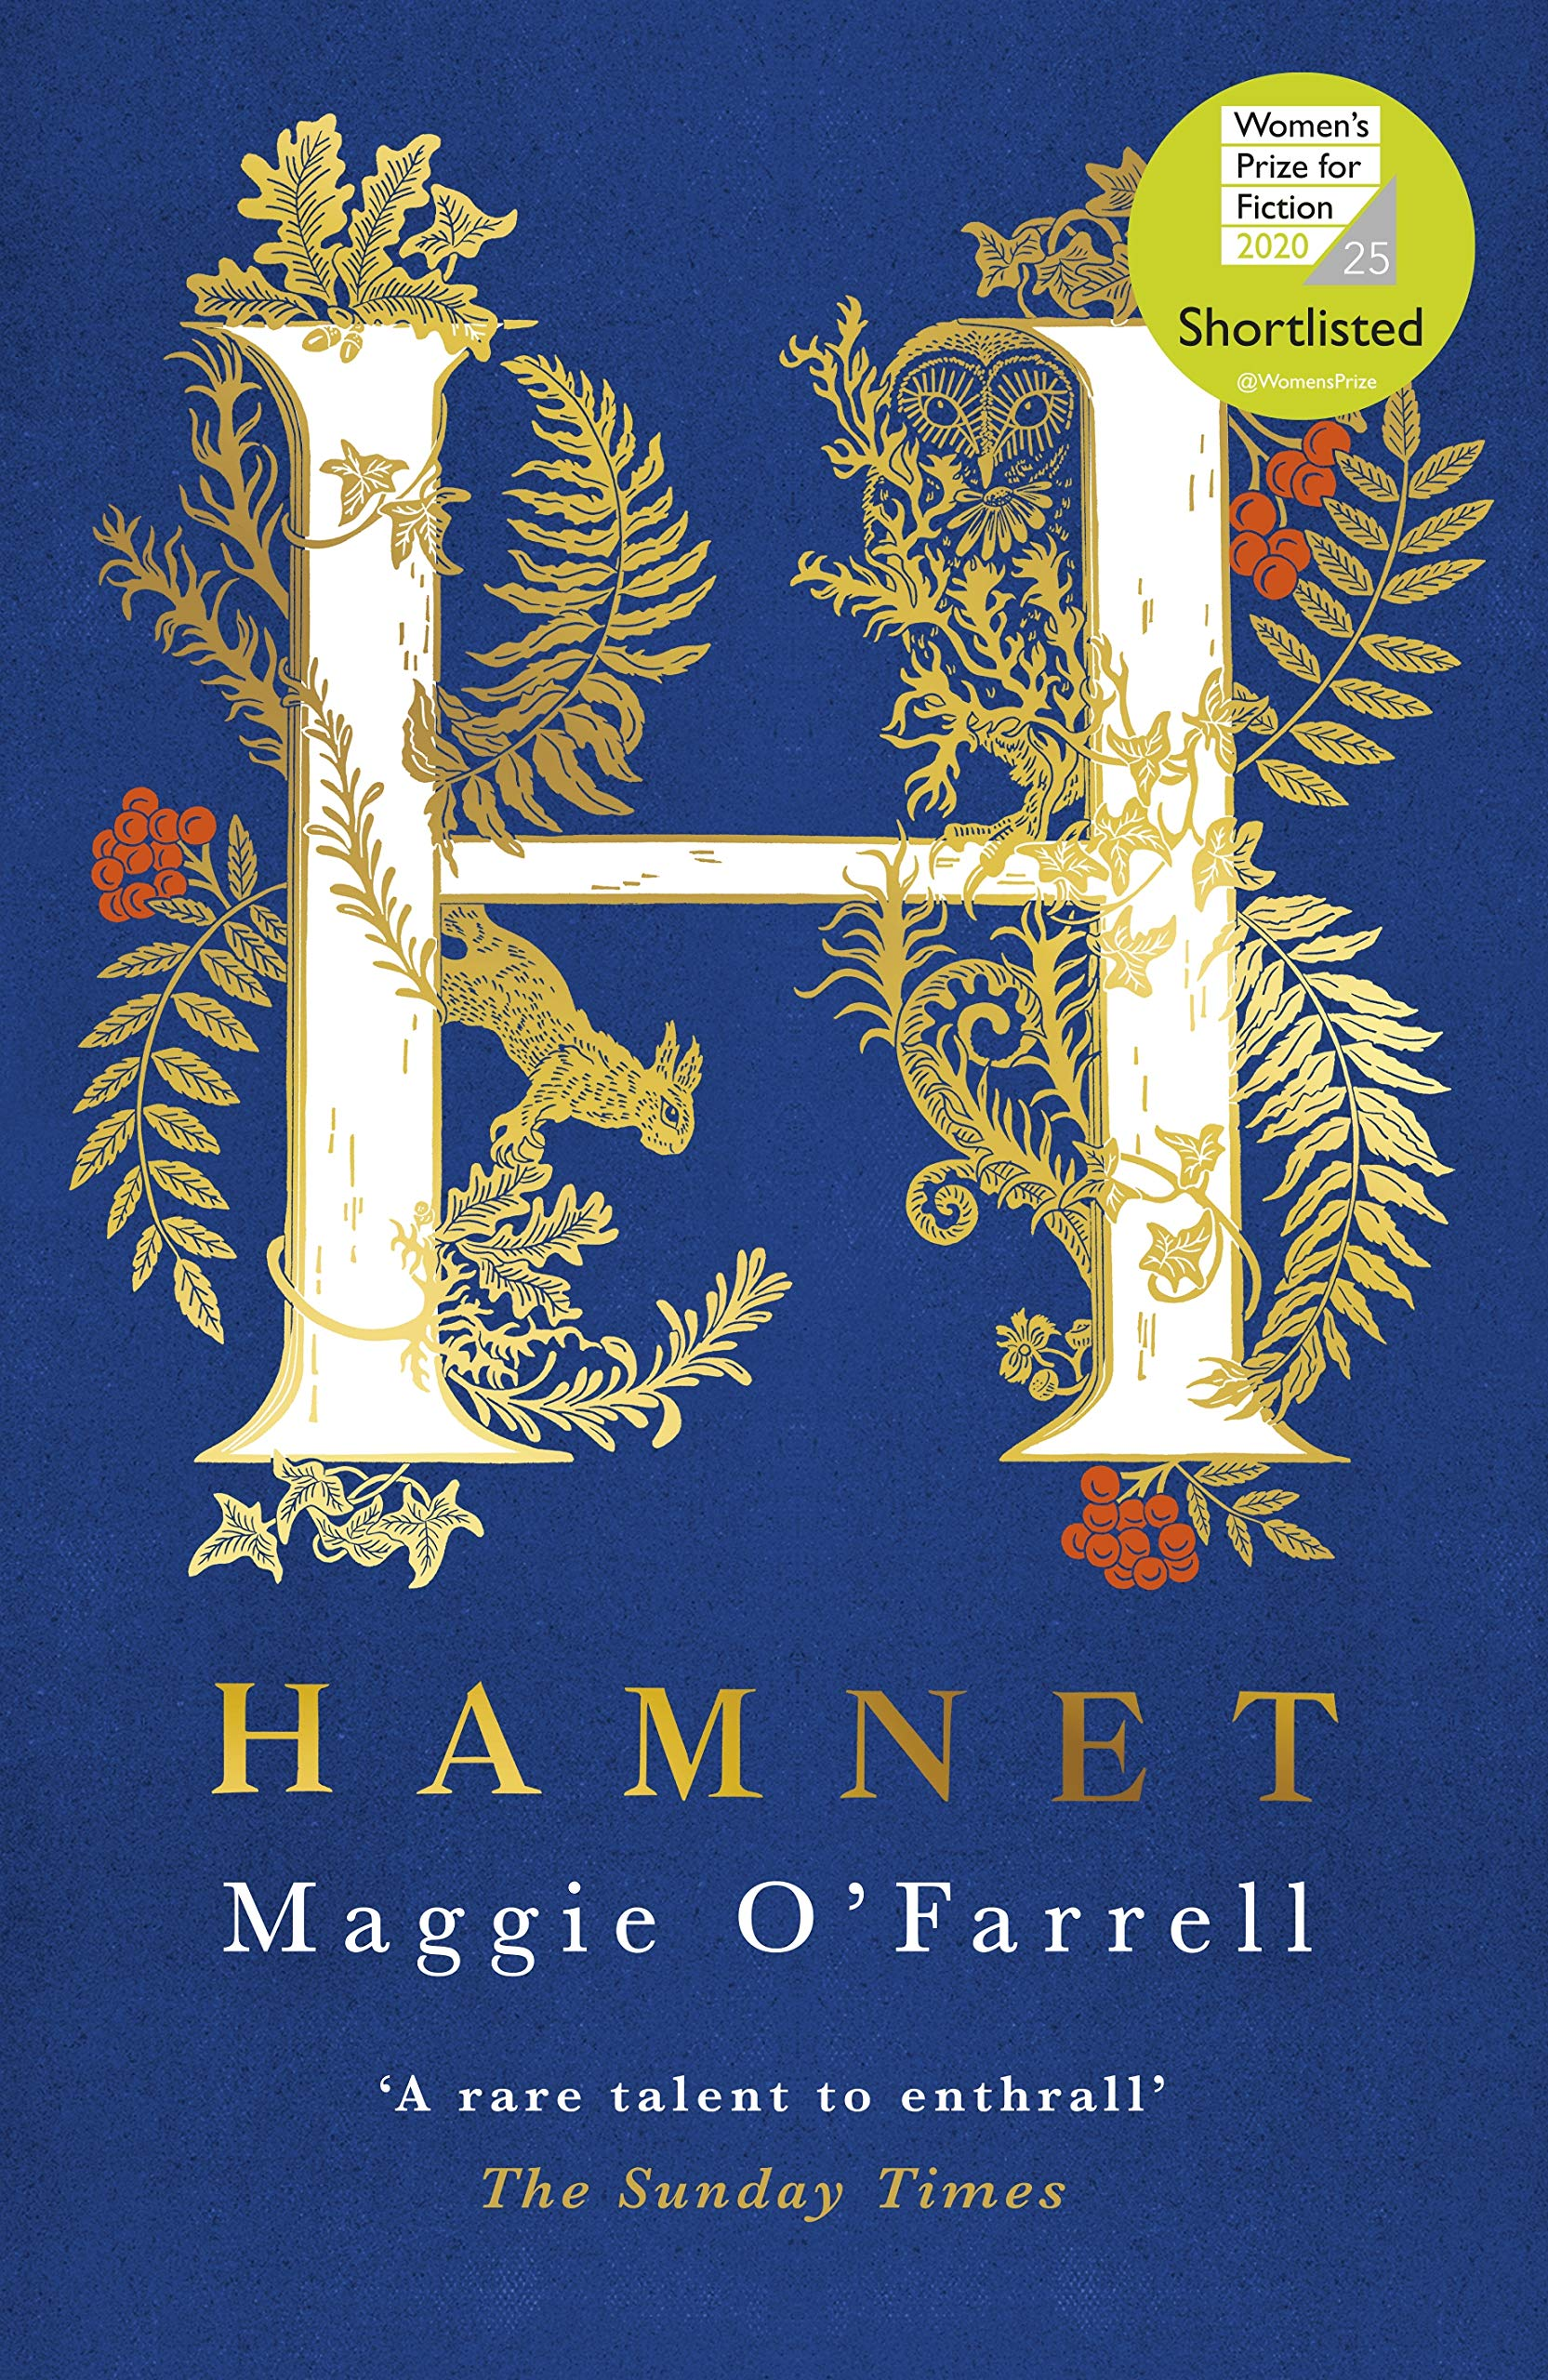 Hamnet: SHORTLISTED FOR THE WOMEN'S PRIZE FOR FICTION por Maggie O'Farrell